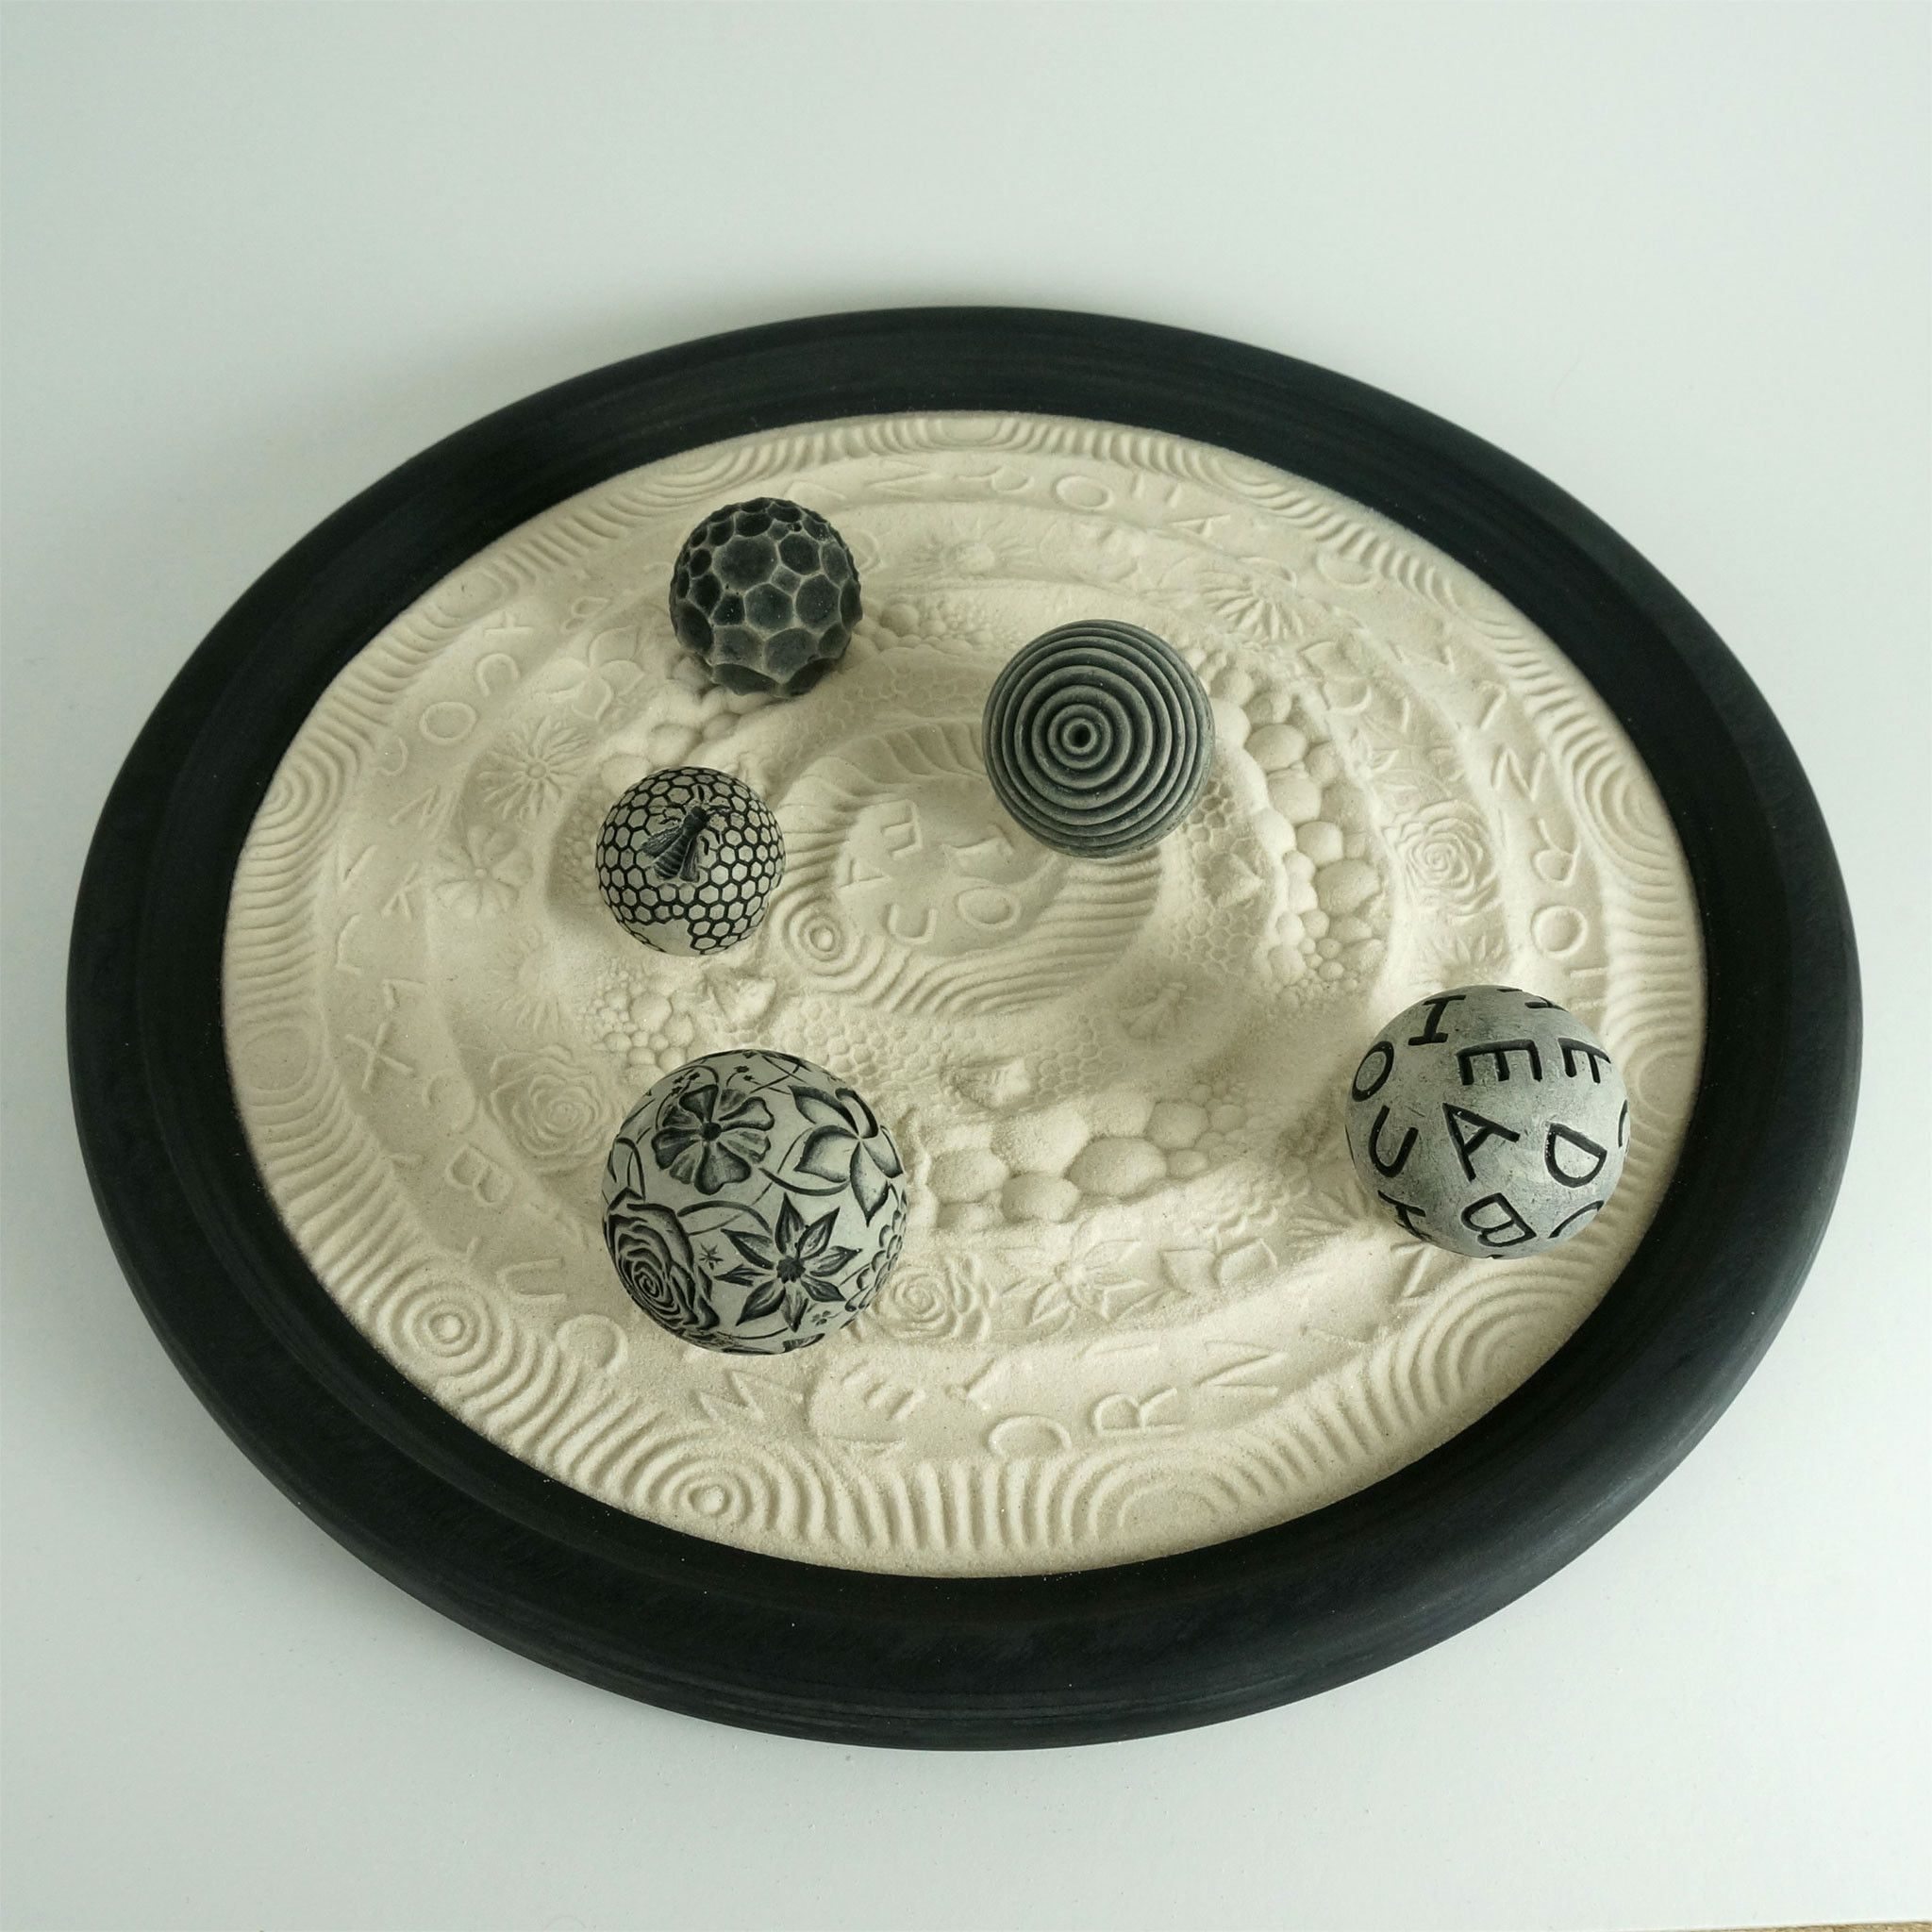 Tabletop modern zen garden simply the best package 15 for Table zen garden